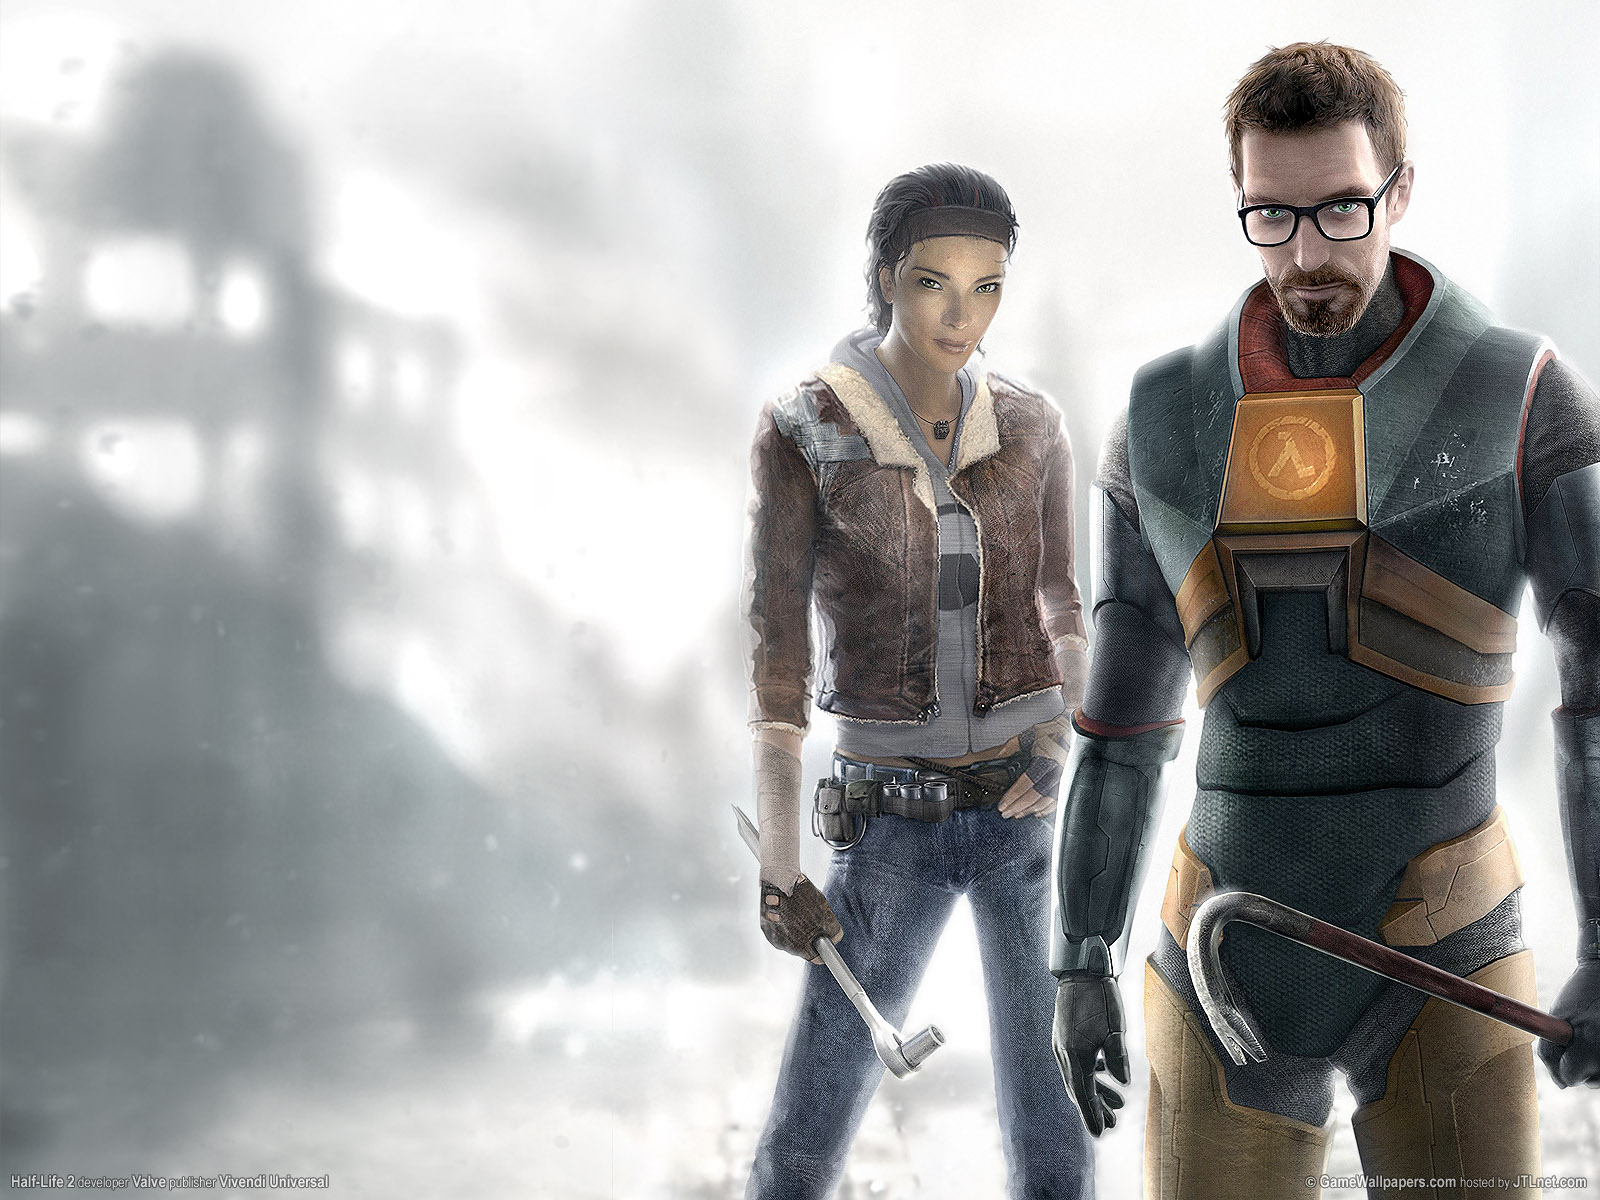 half life 2 images alyx and gordan hd wallpaper and background